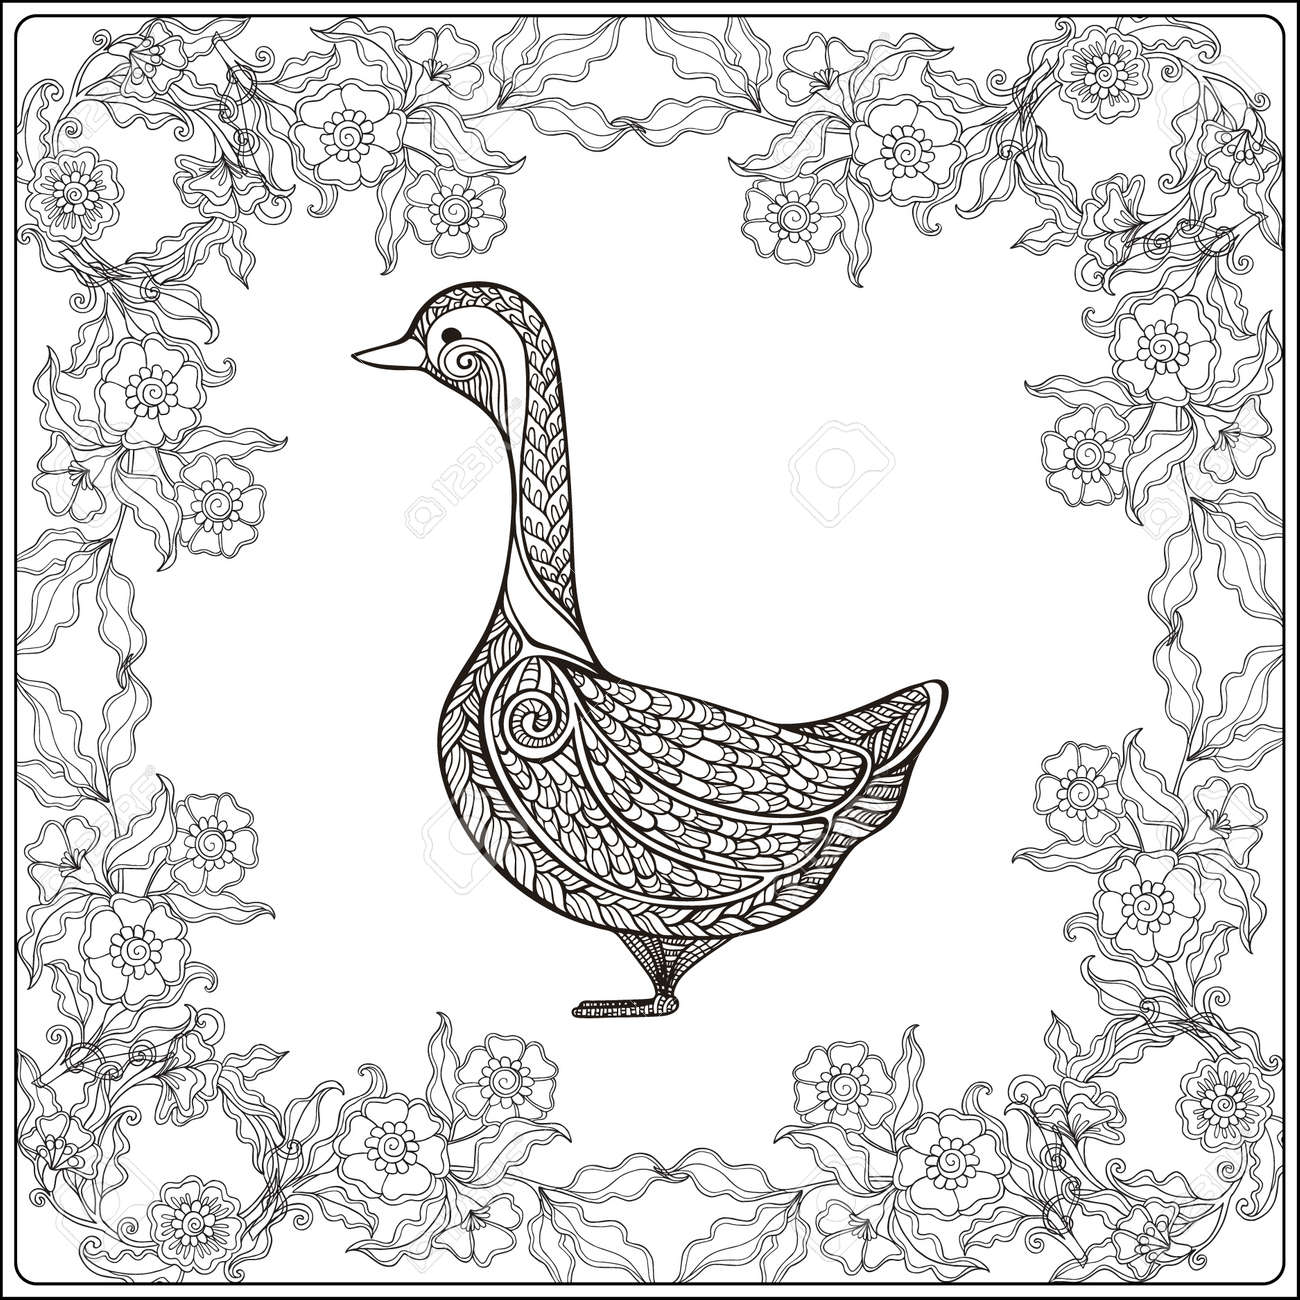 Goose In Floral Frame Coloring Book For Adult And Older Children Page